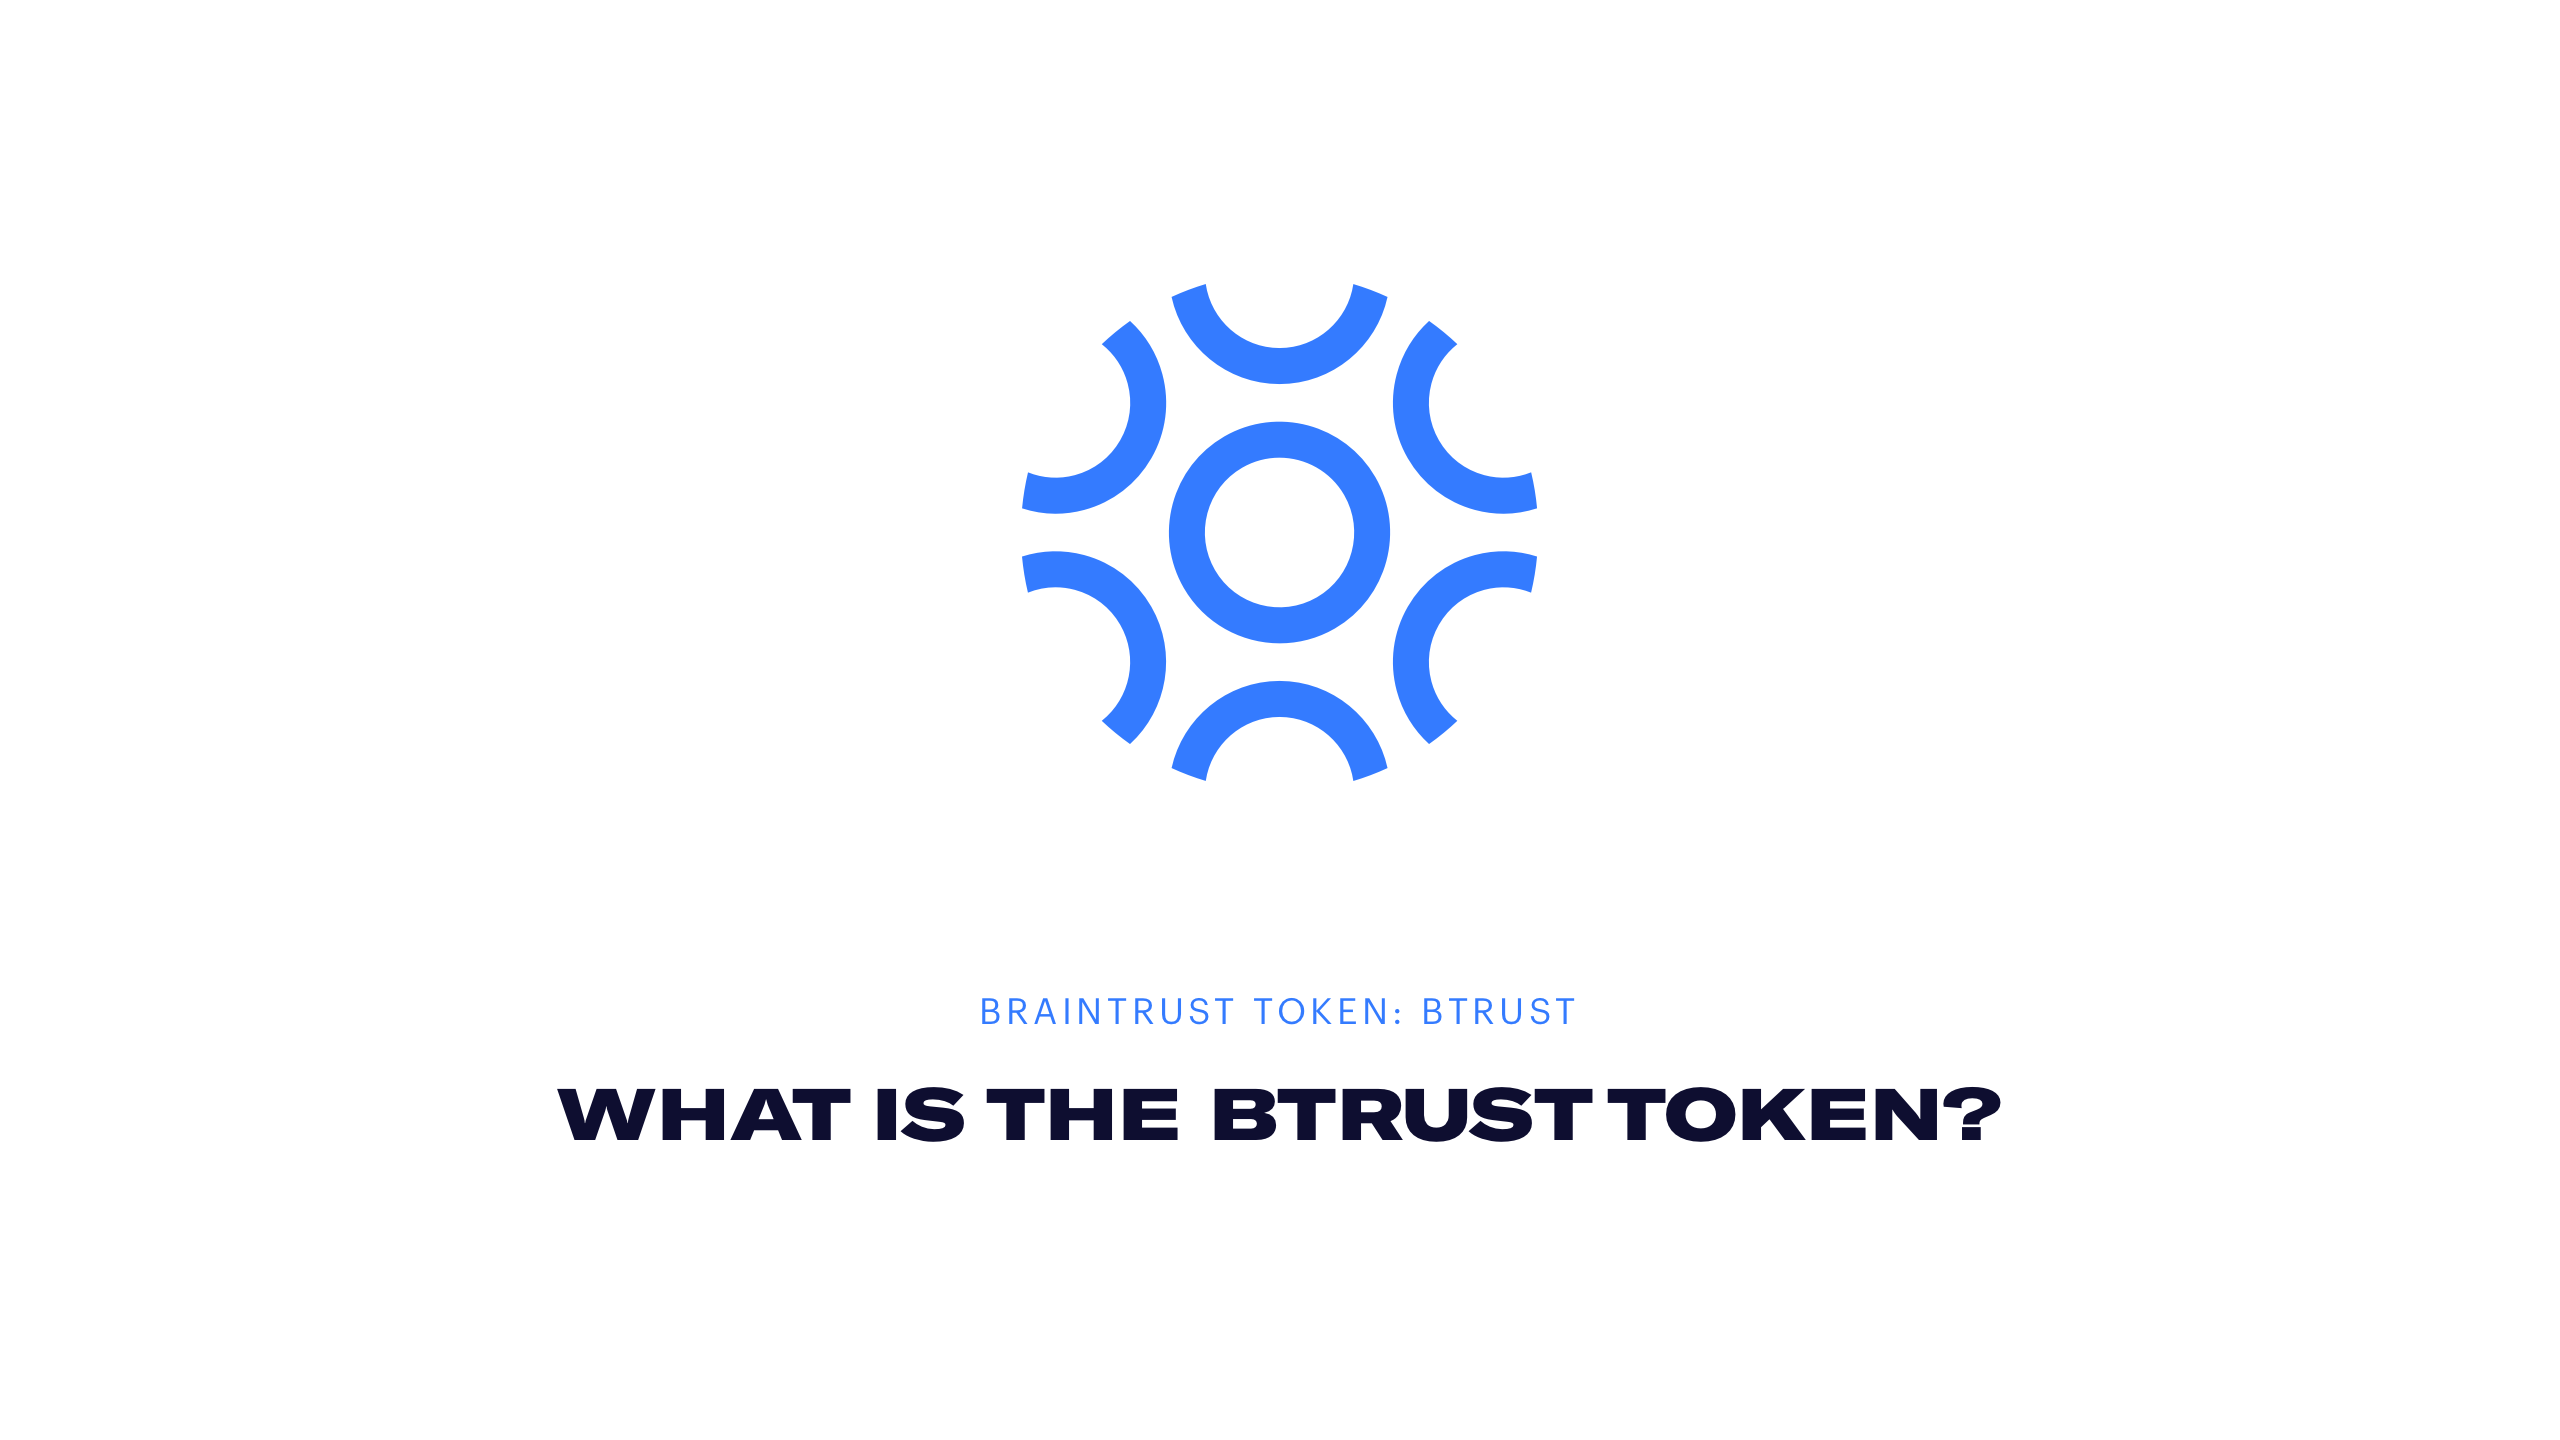 BTRUST - What is the BTRUST token?